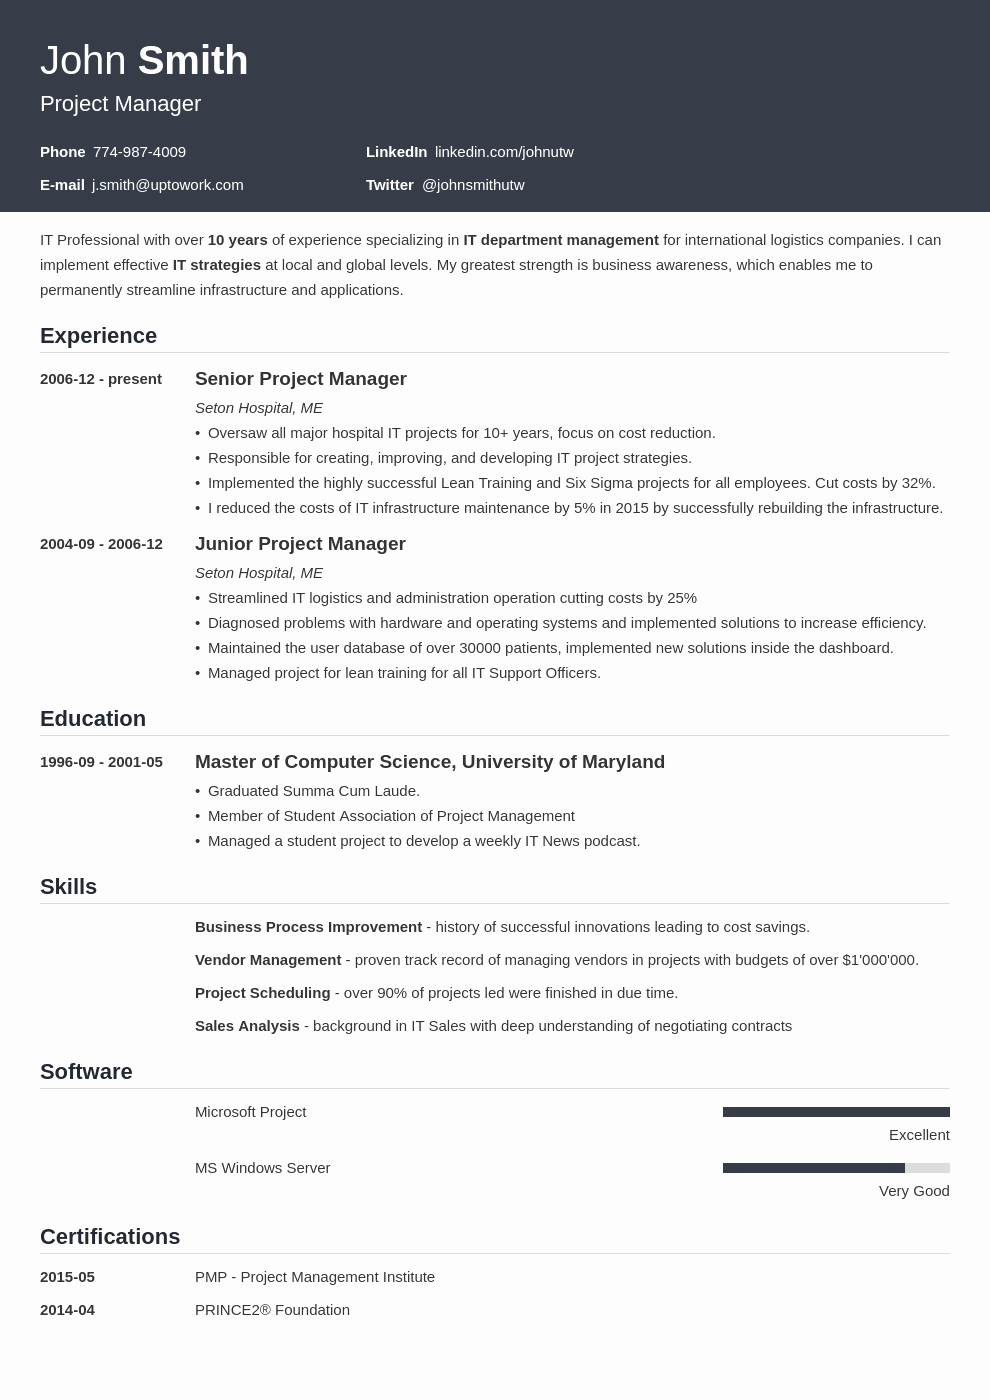 Resume Template Download Word Free Beautiful Professional Resume Template Free Download Word format